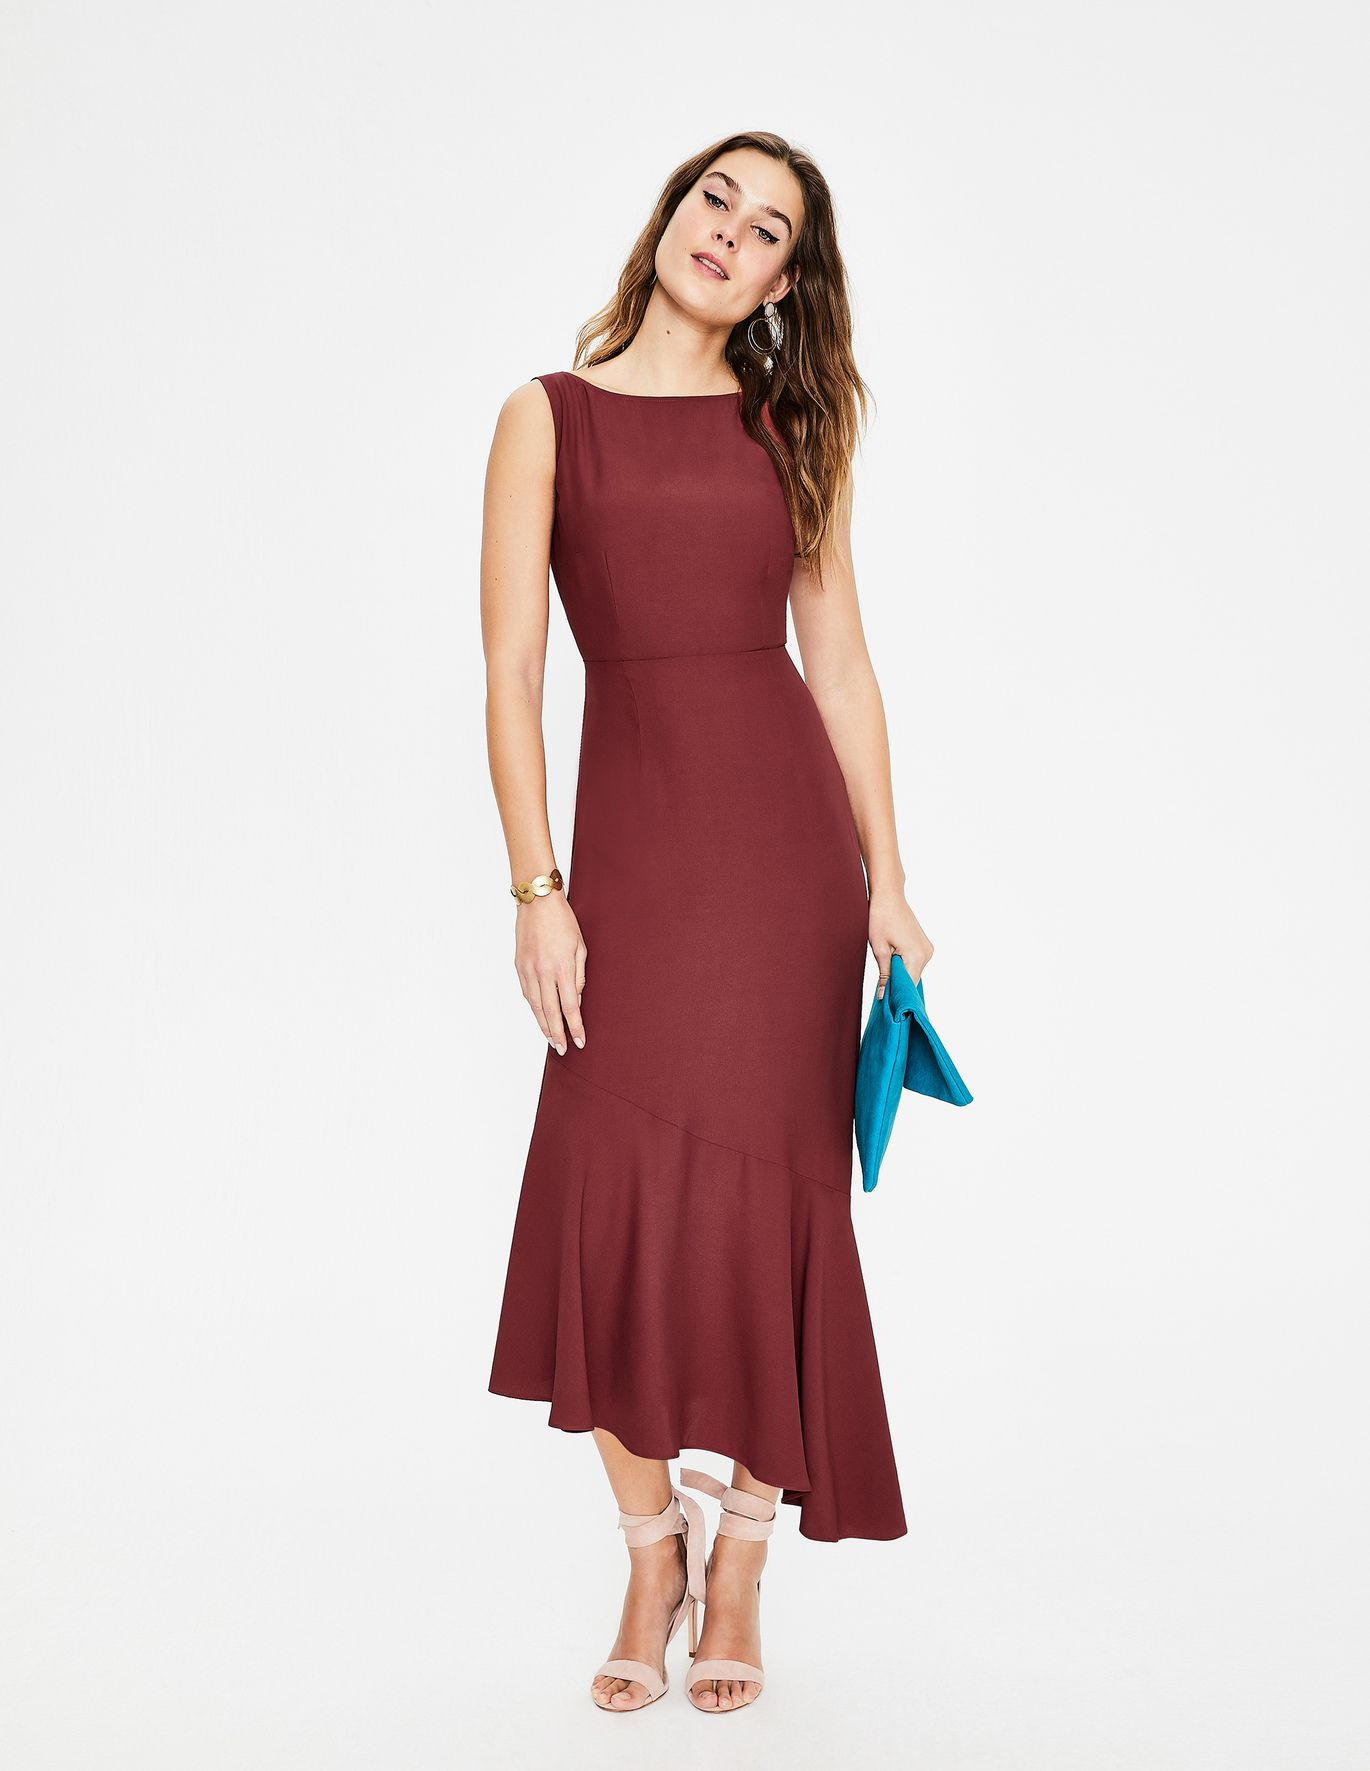 7ab4c2189a72 Tessa Midi Dress - Conker | Romilly in 2019 | Dresses for work ...